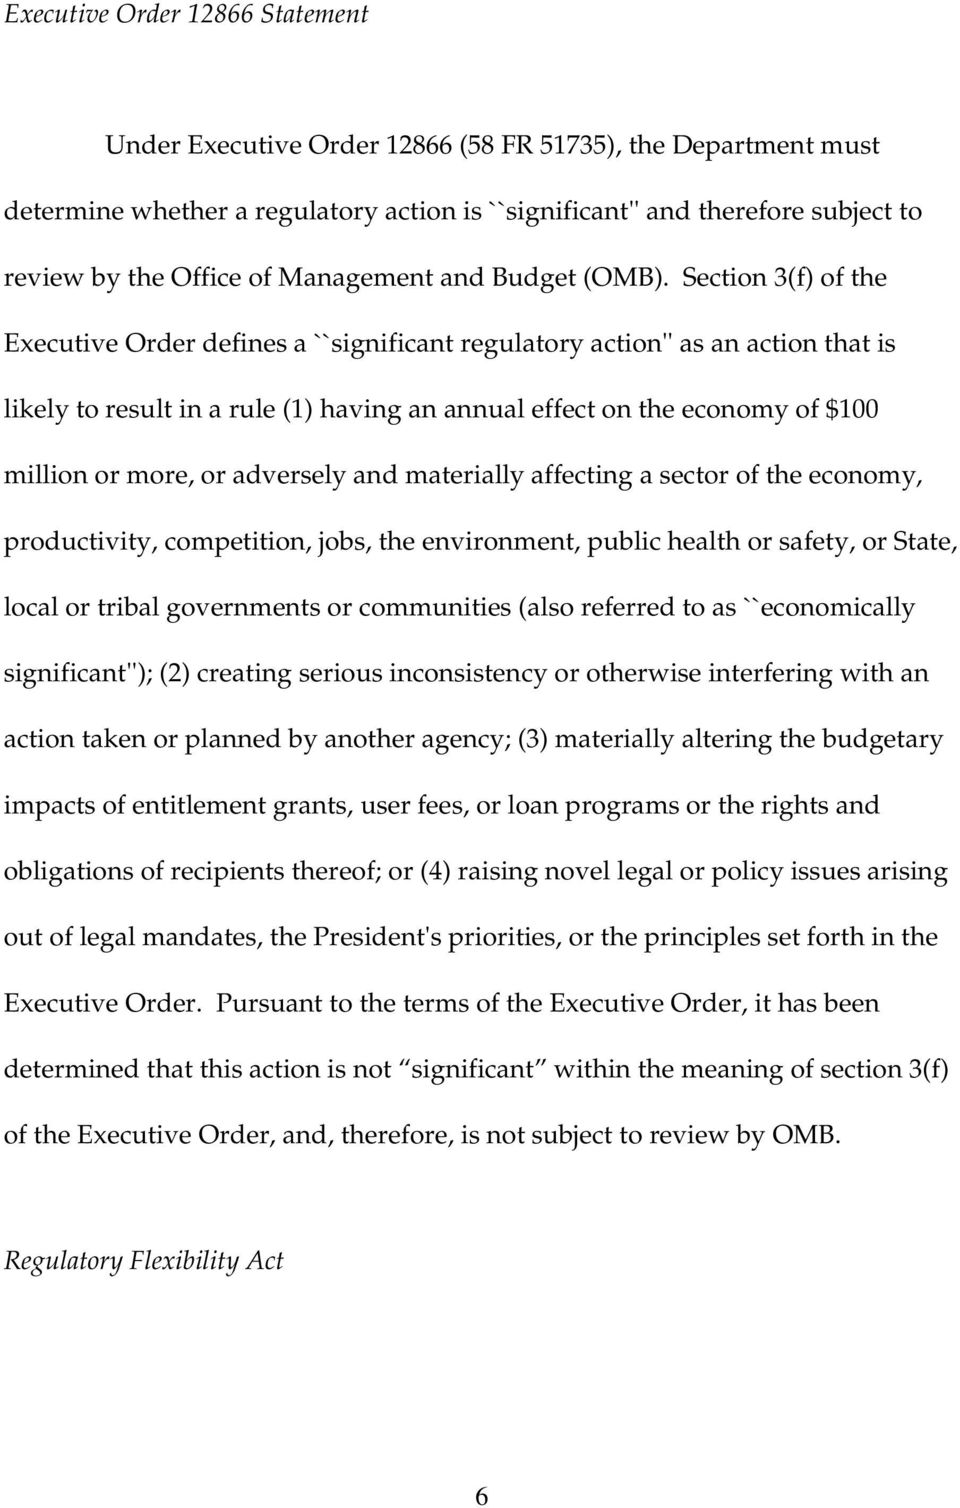 Section 3(f) of the Executive Order defines a ``significant regulatory action'' as an action that is likely to result in a rule (1) having an annual effect on the economy of $100 million or more, or